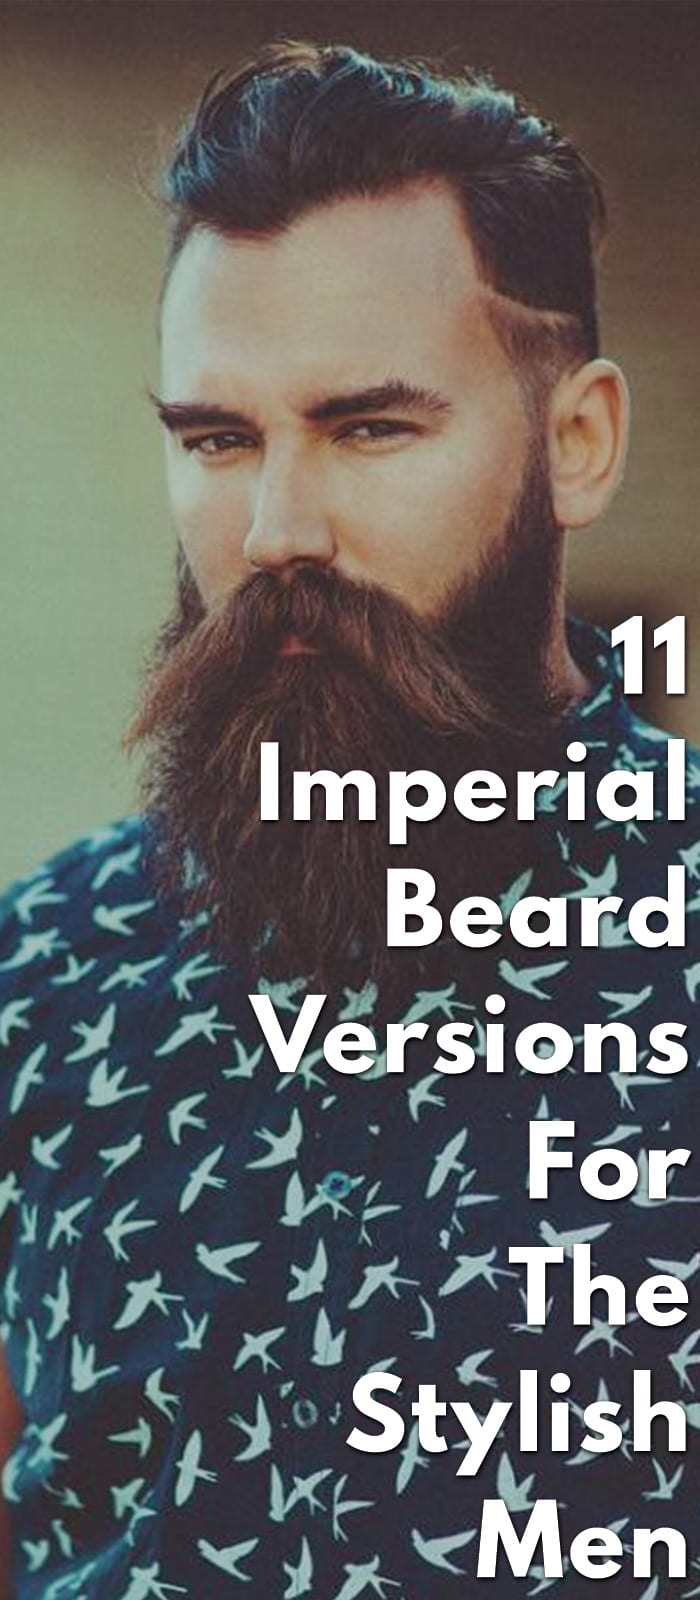 11-Imperial-Beard-Versions-For-The-Stylish-Men..